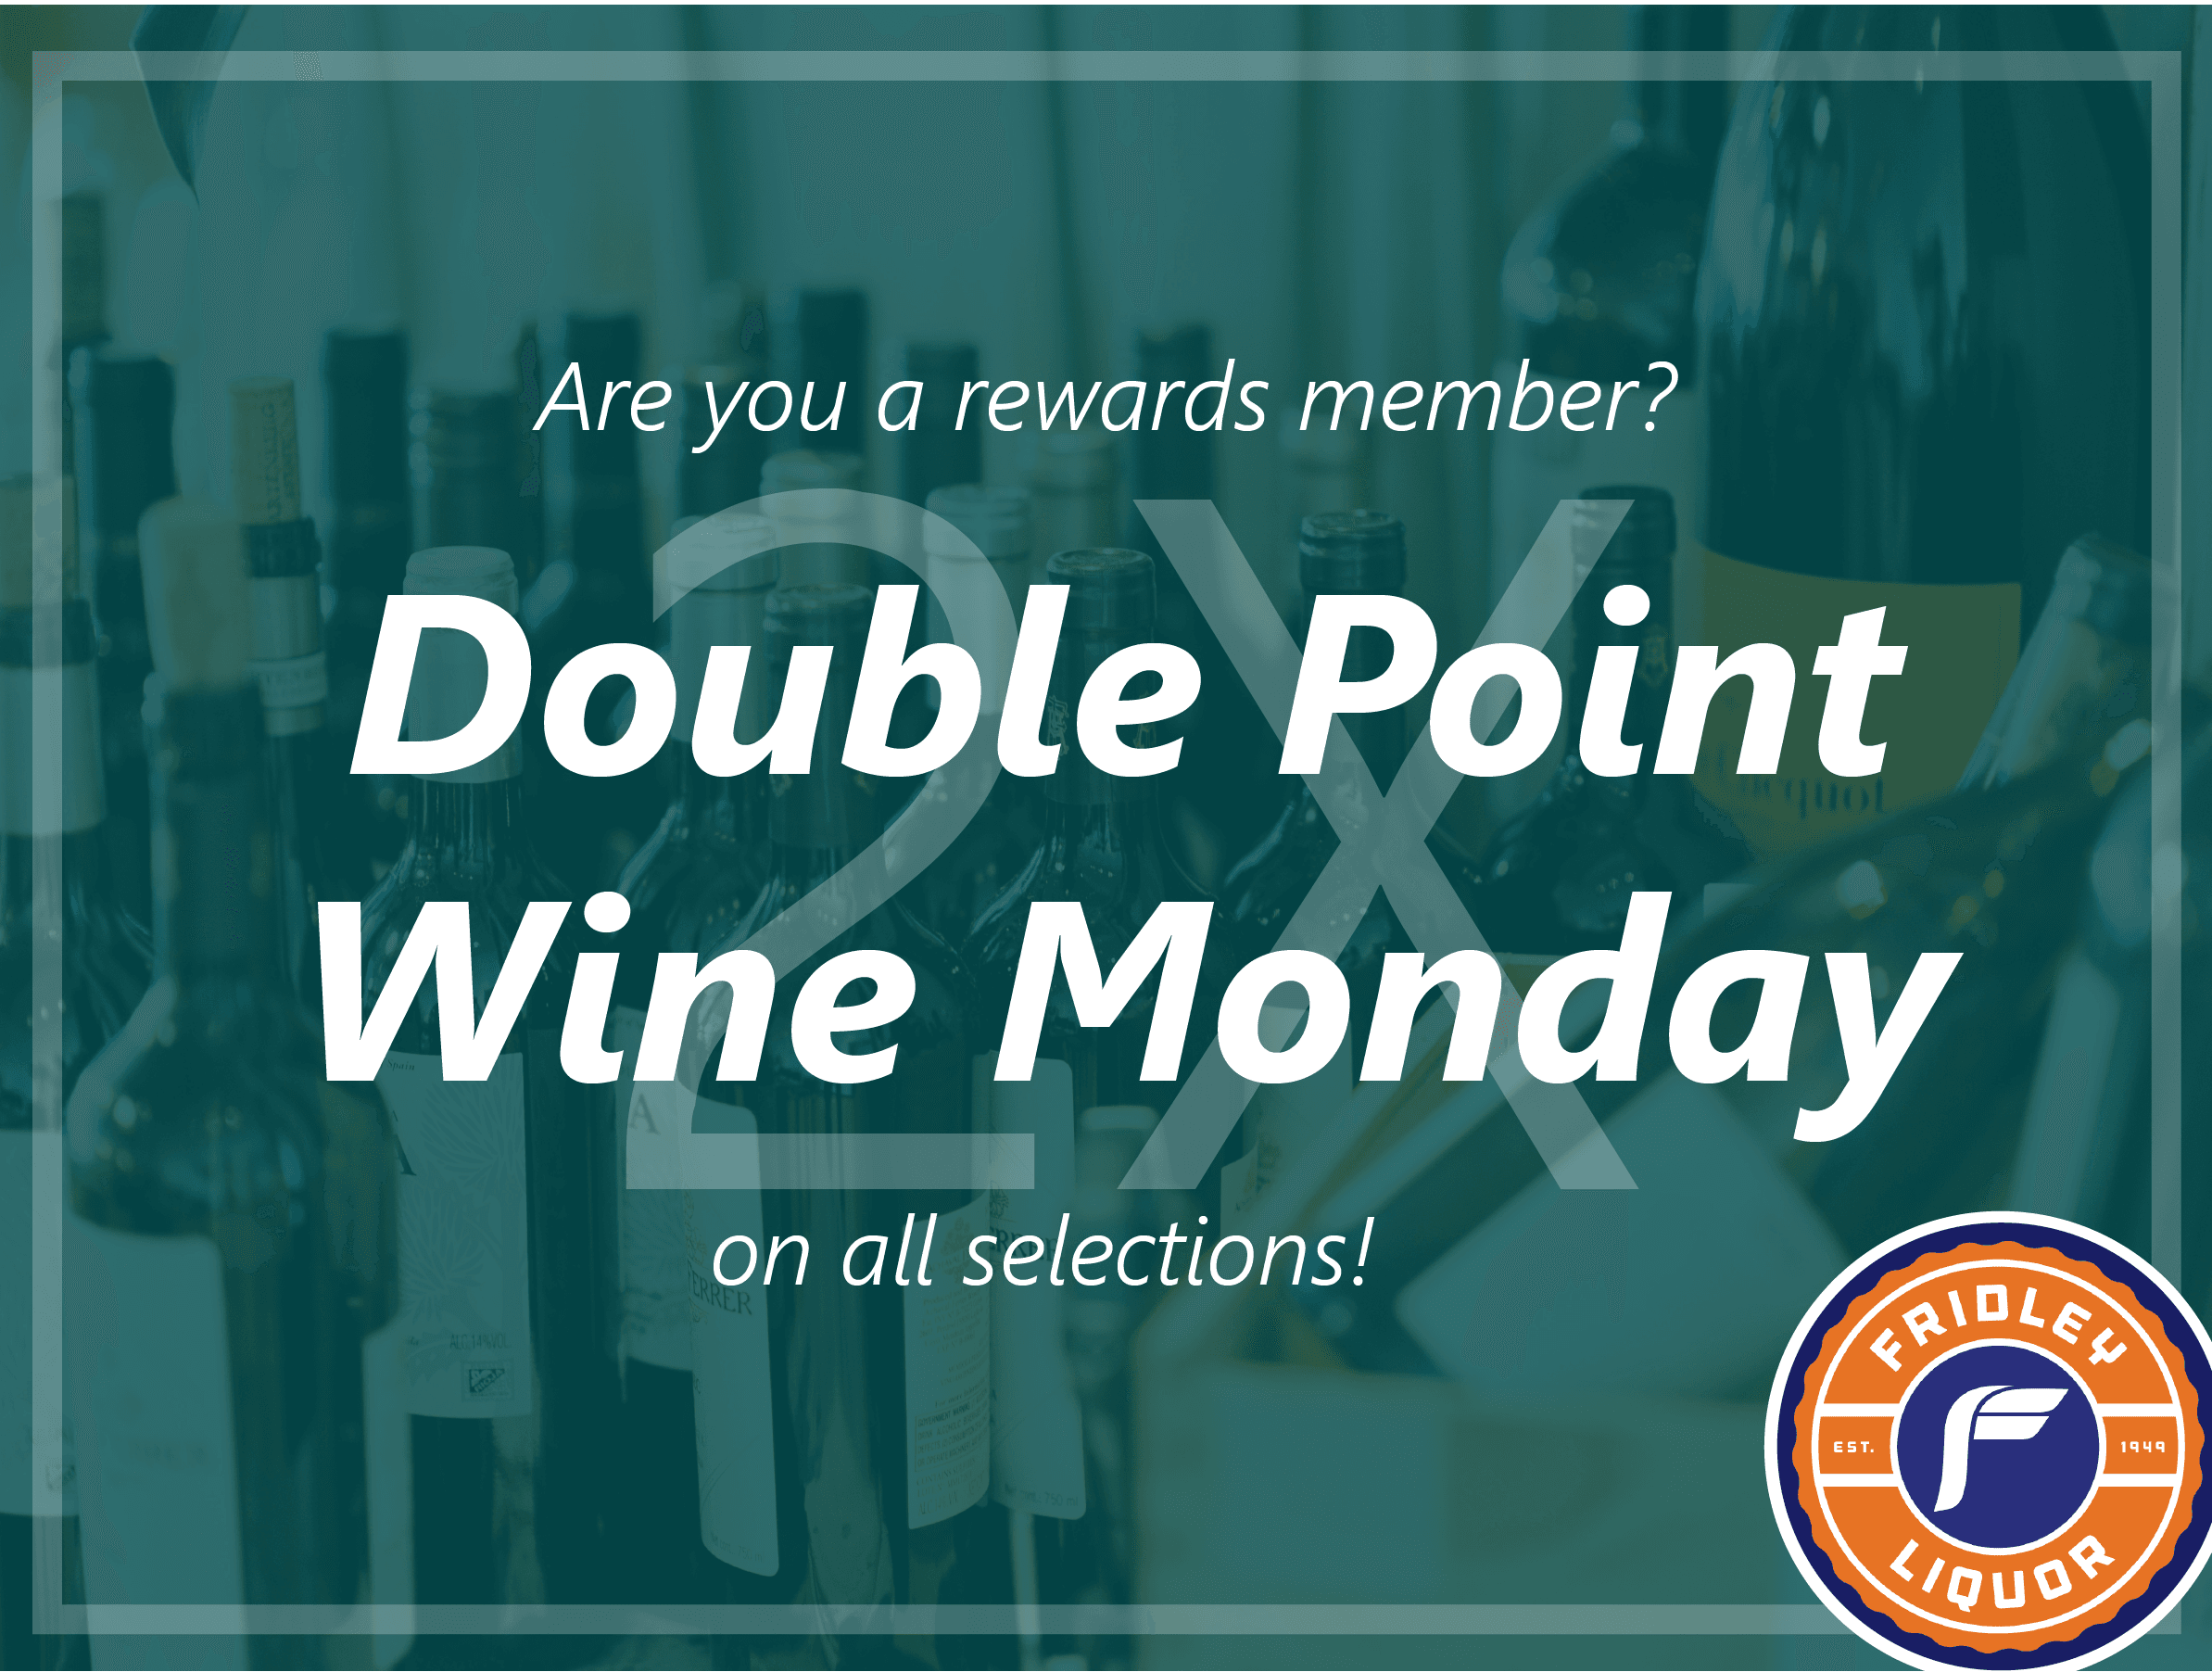 Double Point Wine Monday